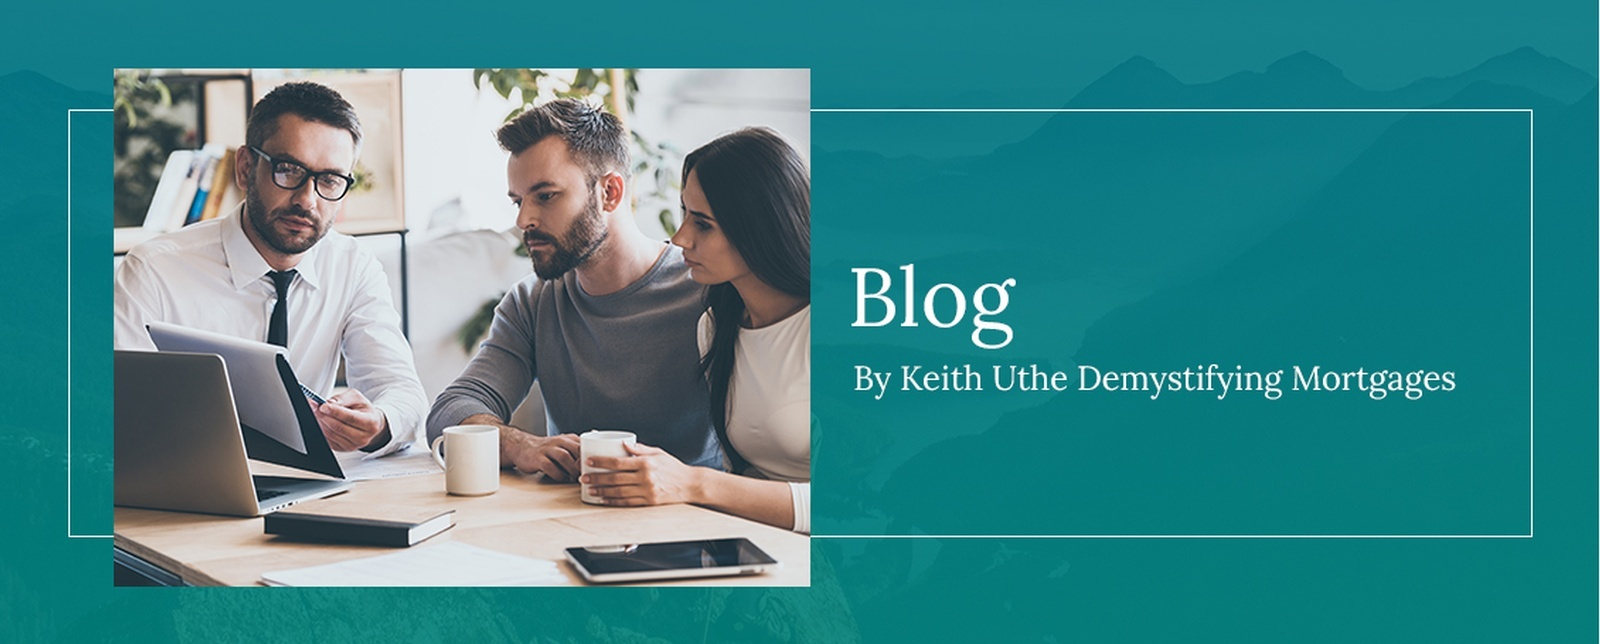 Blog by Keith Uthe Demystifying Mortgages